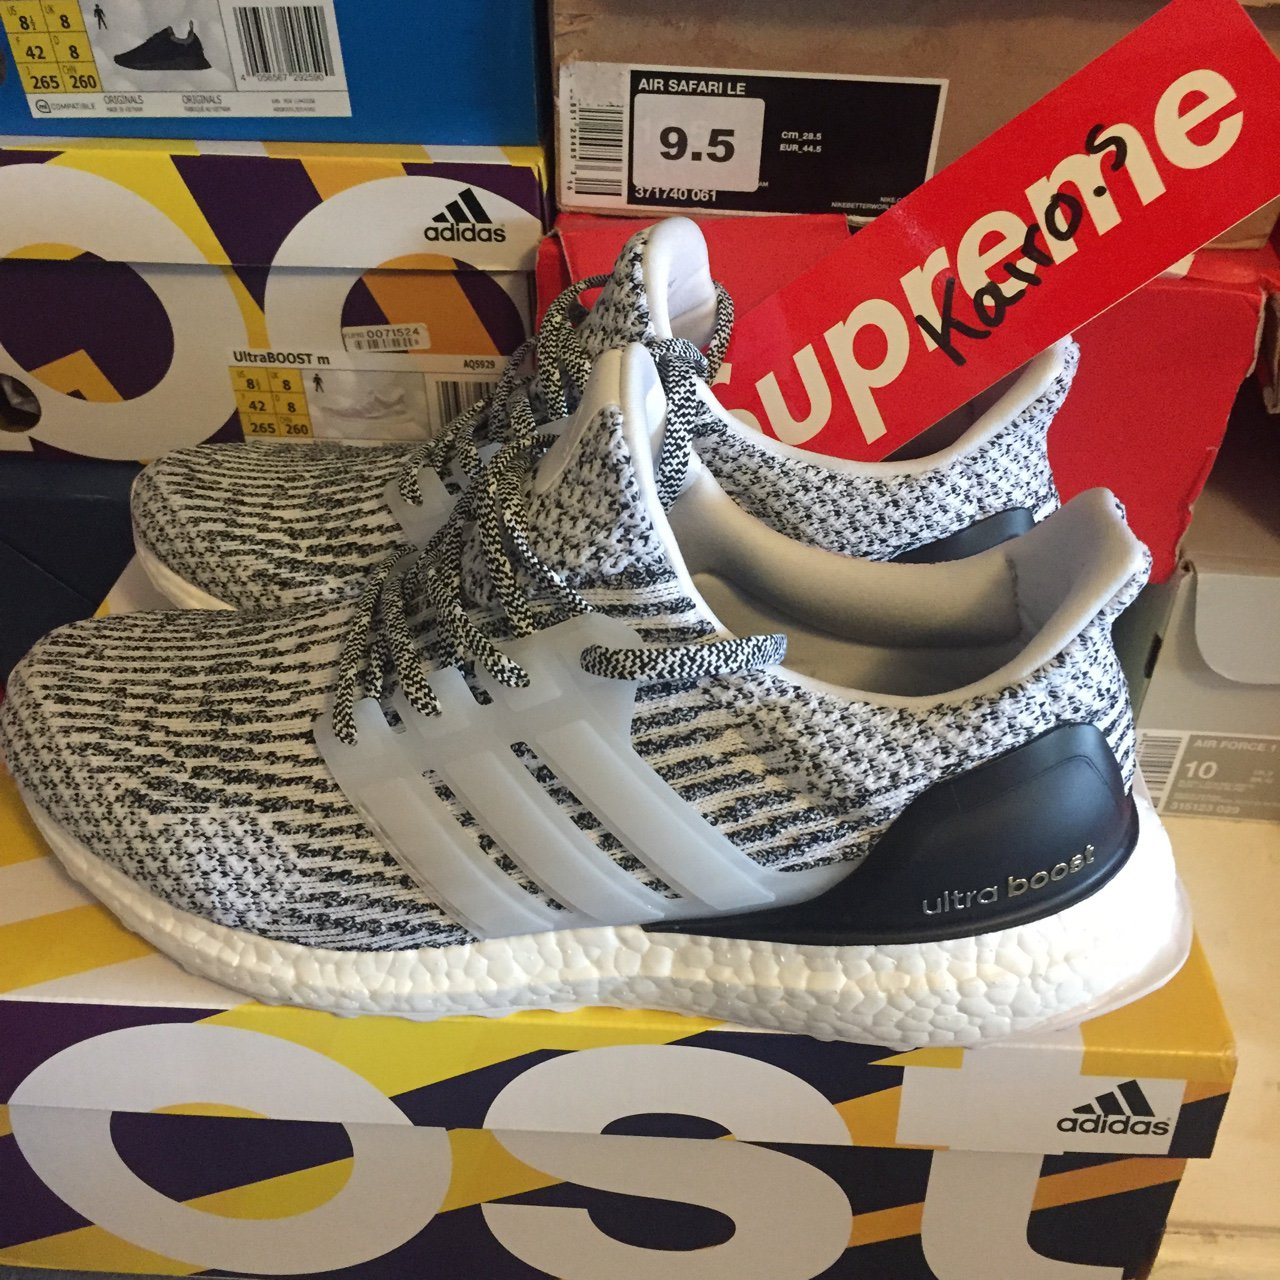 f46febe9f79 Adidas Ultra Boost Oreo Size Uk8.5 DS 10 10 condition (tried - Depop